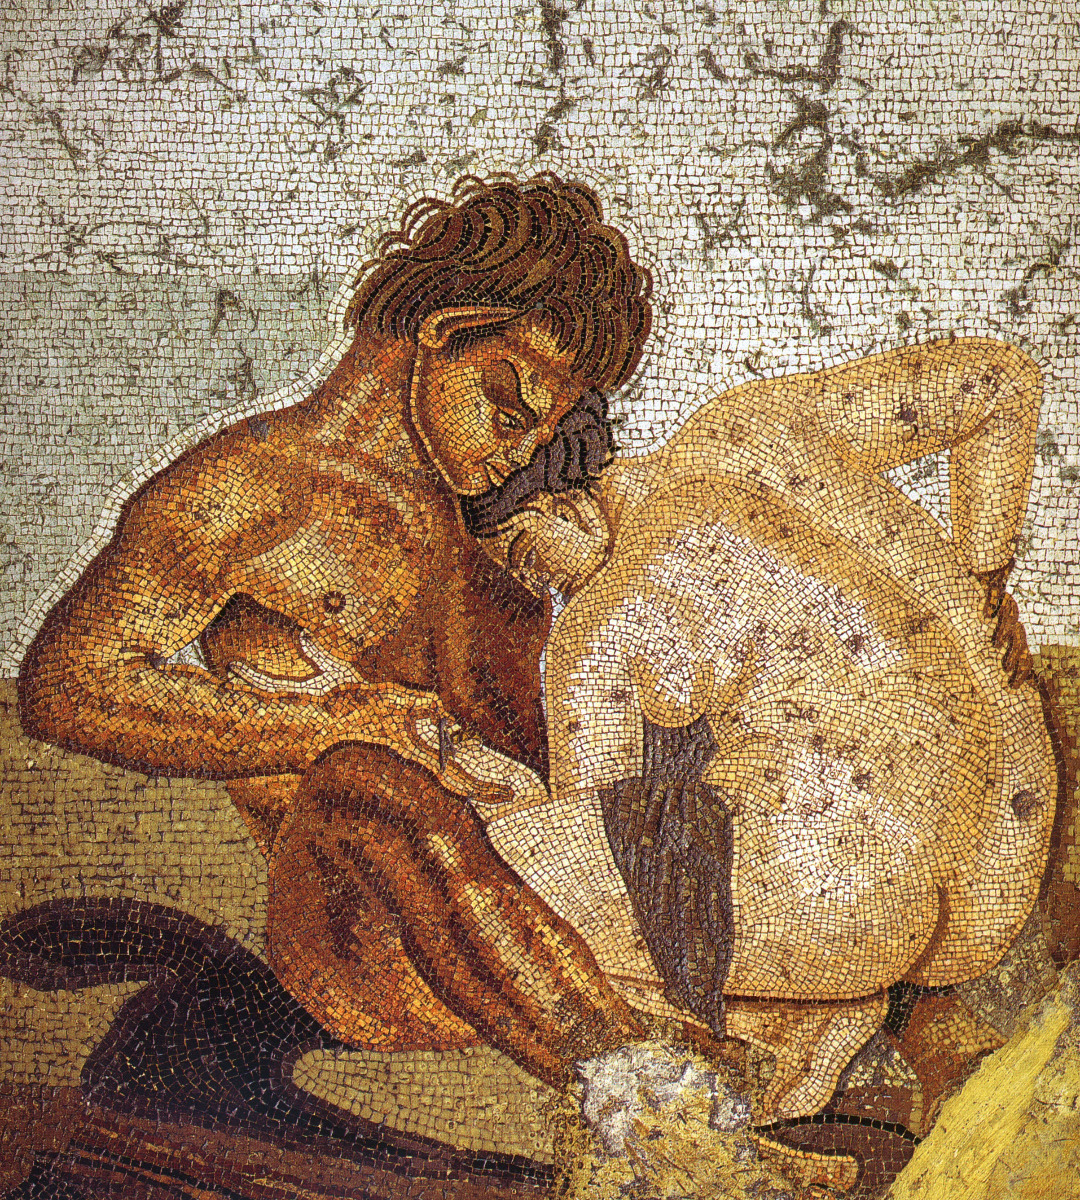 The House of the Faun in Pompeii